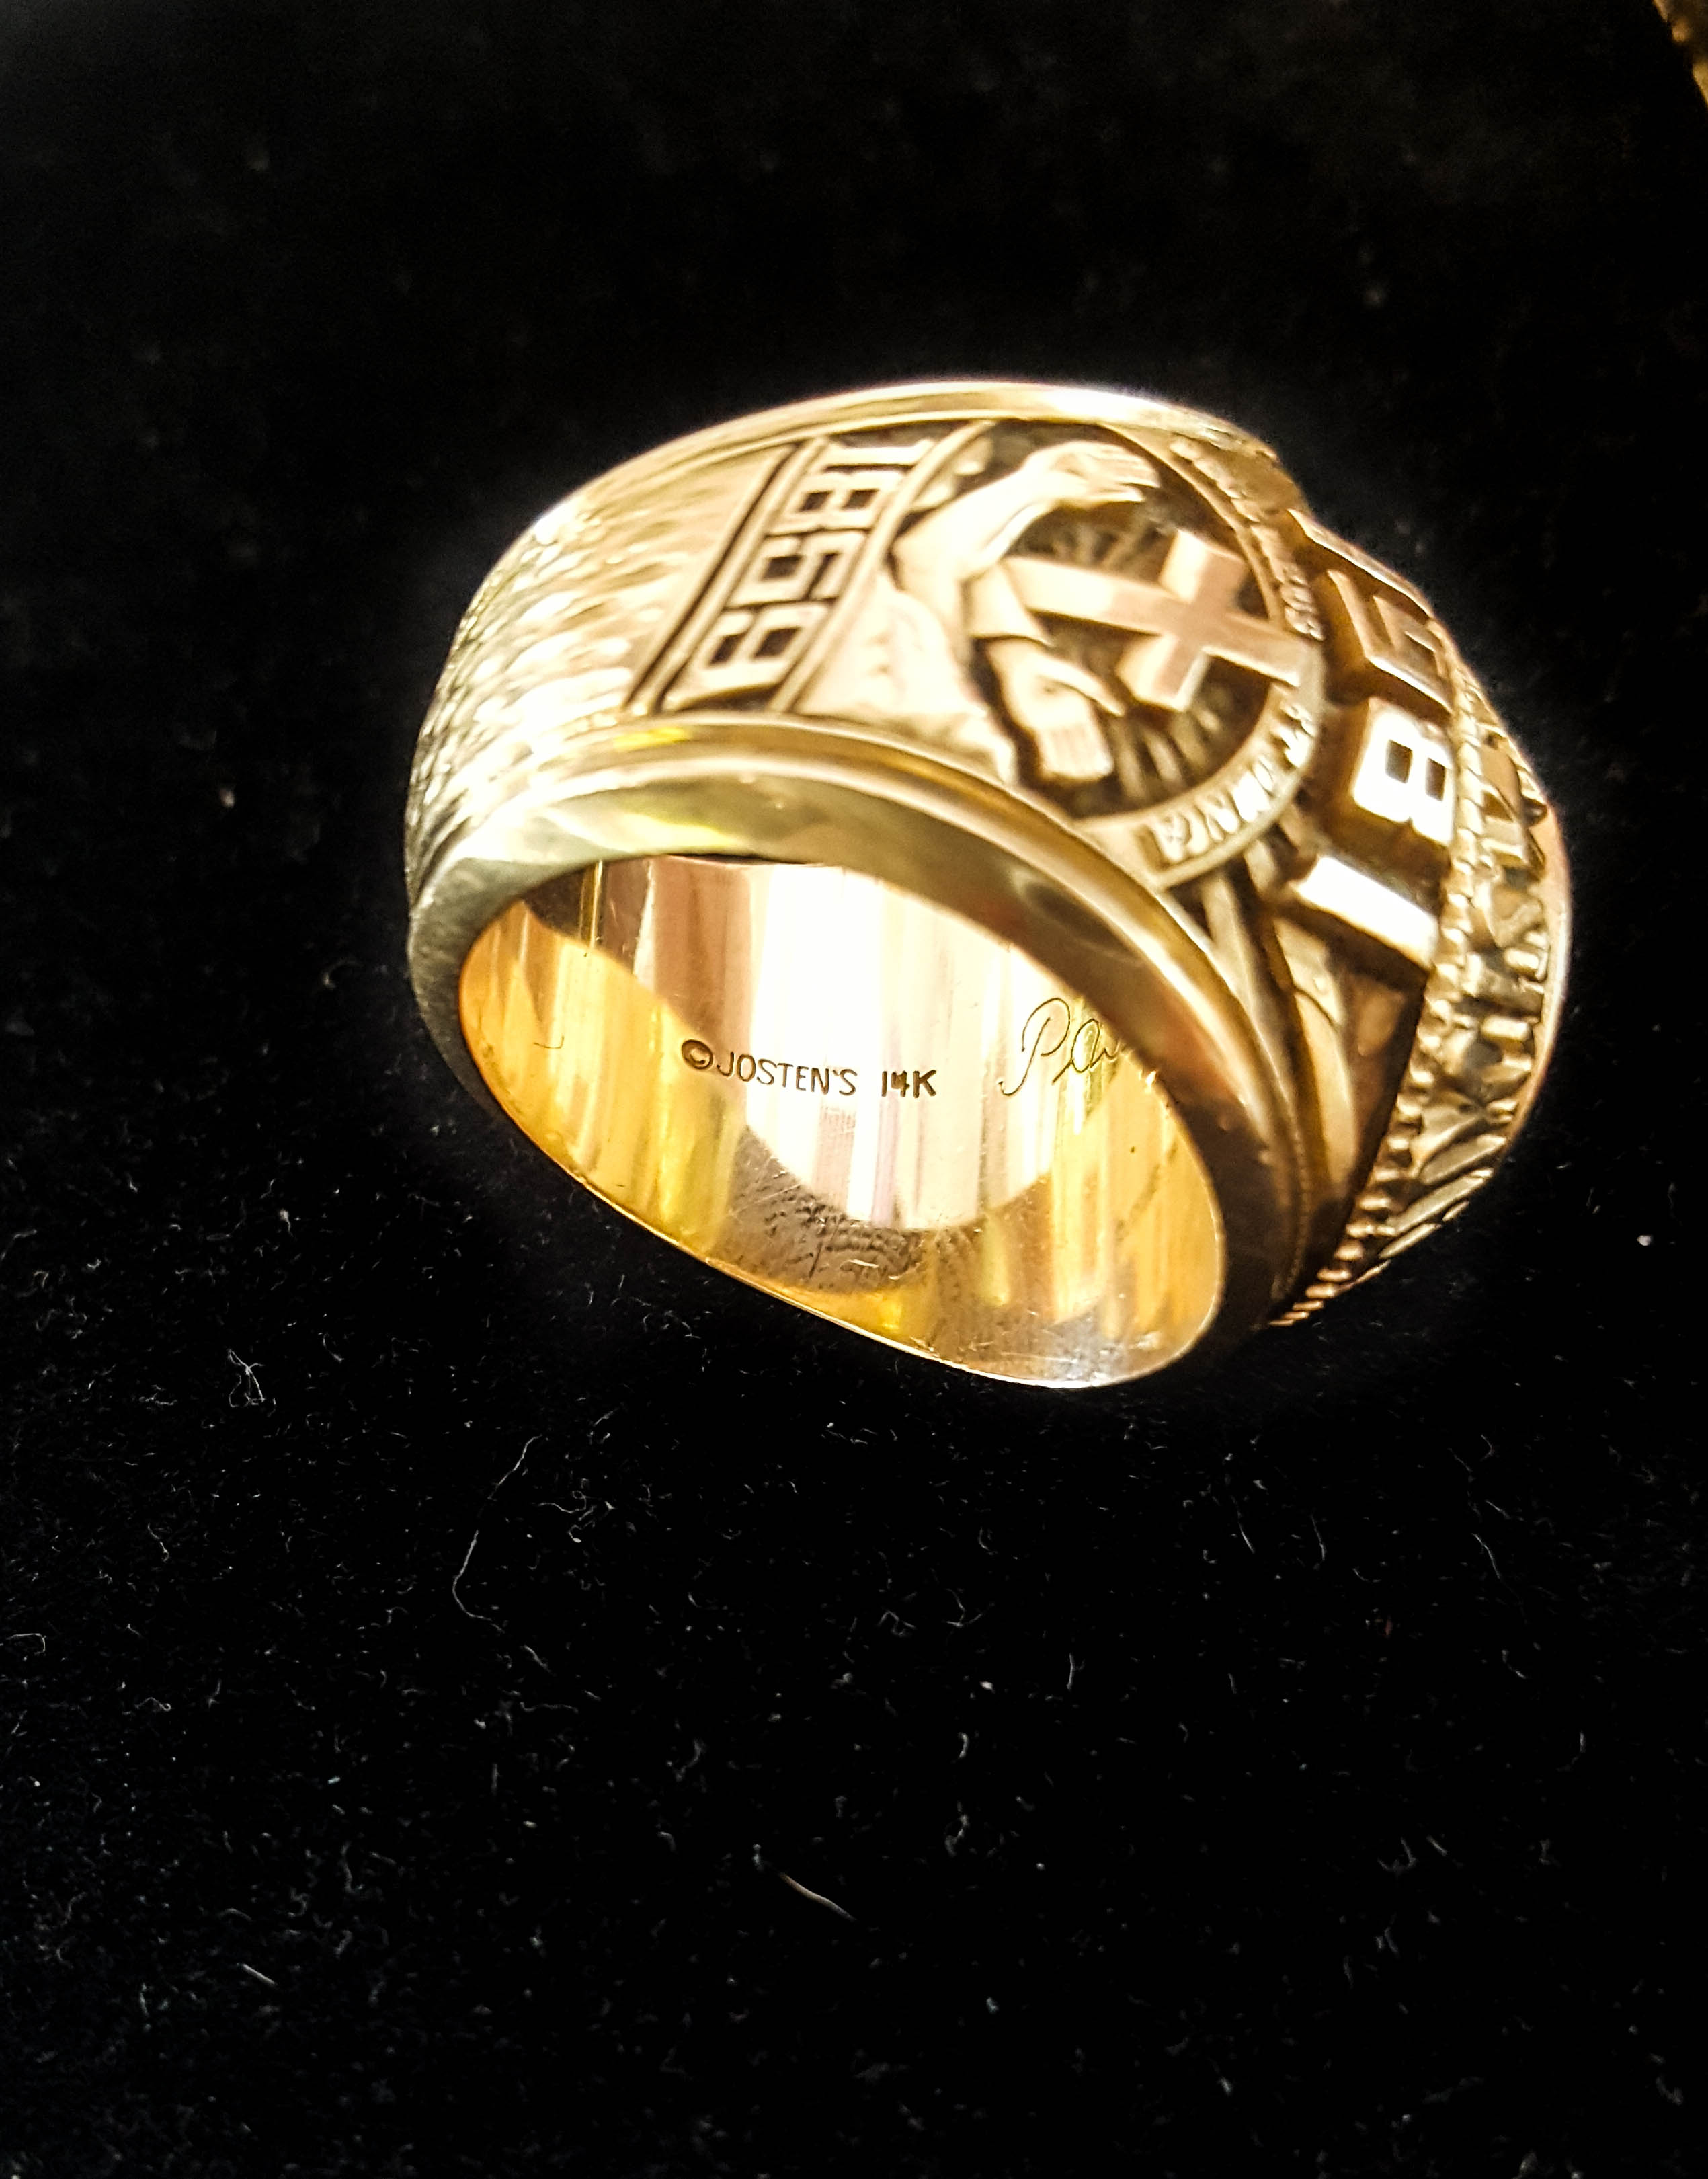 Vintage ring with purity mark